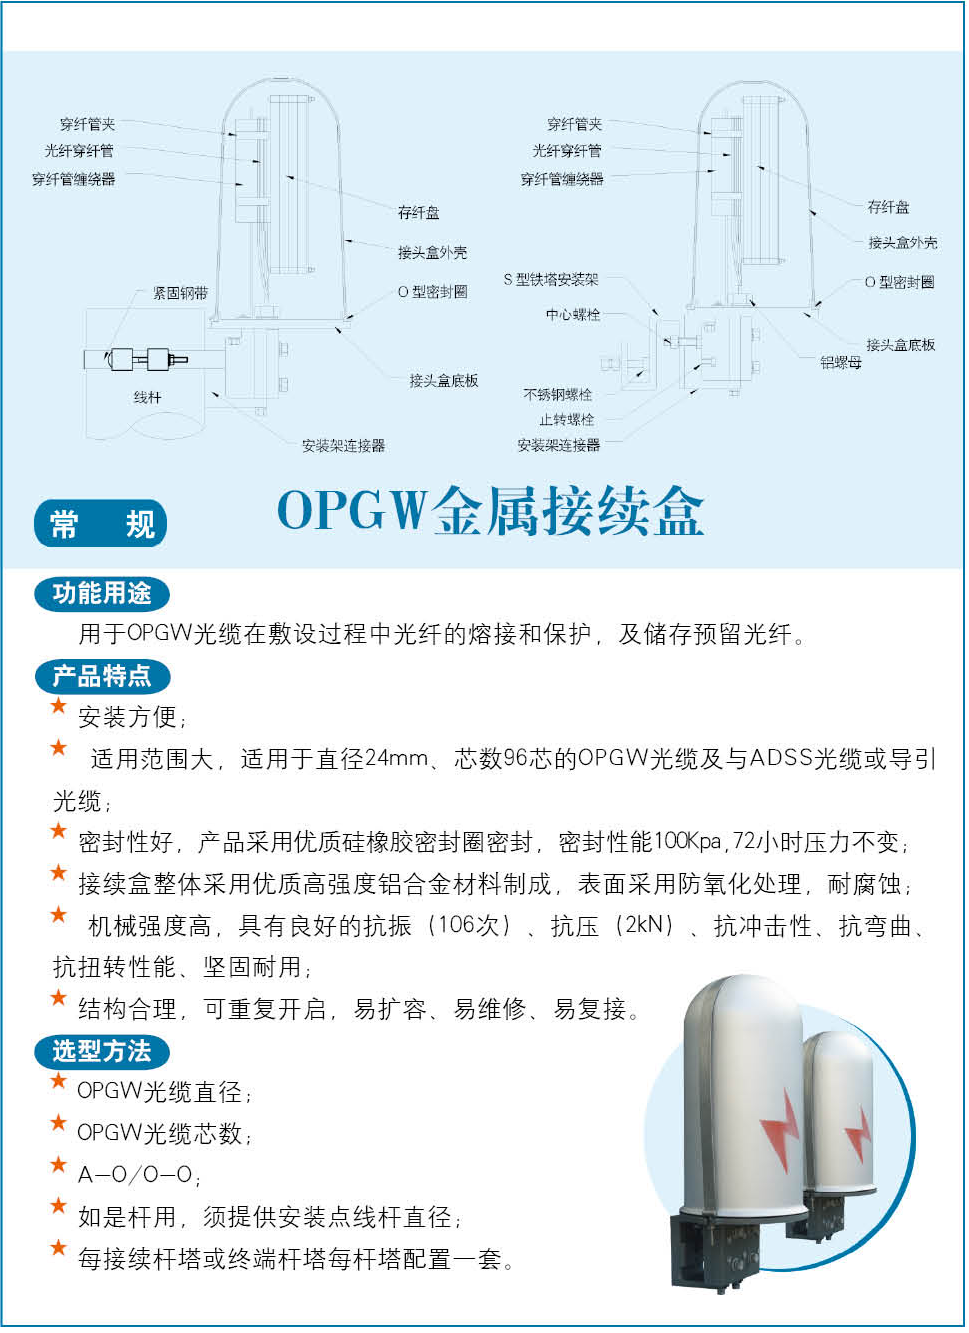 Processing of OPGW cable fittings